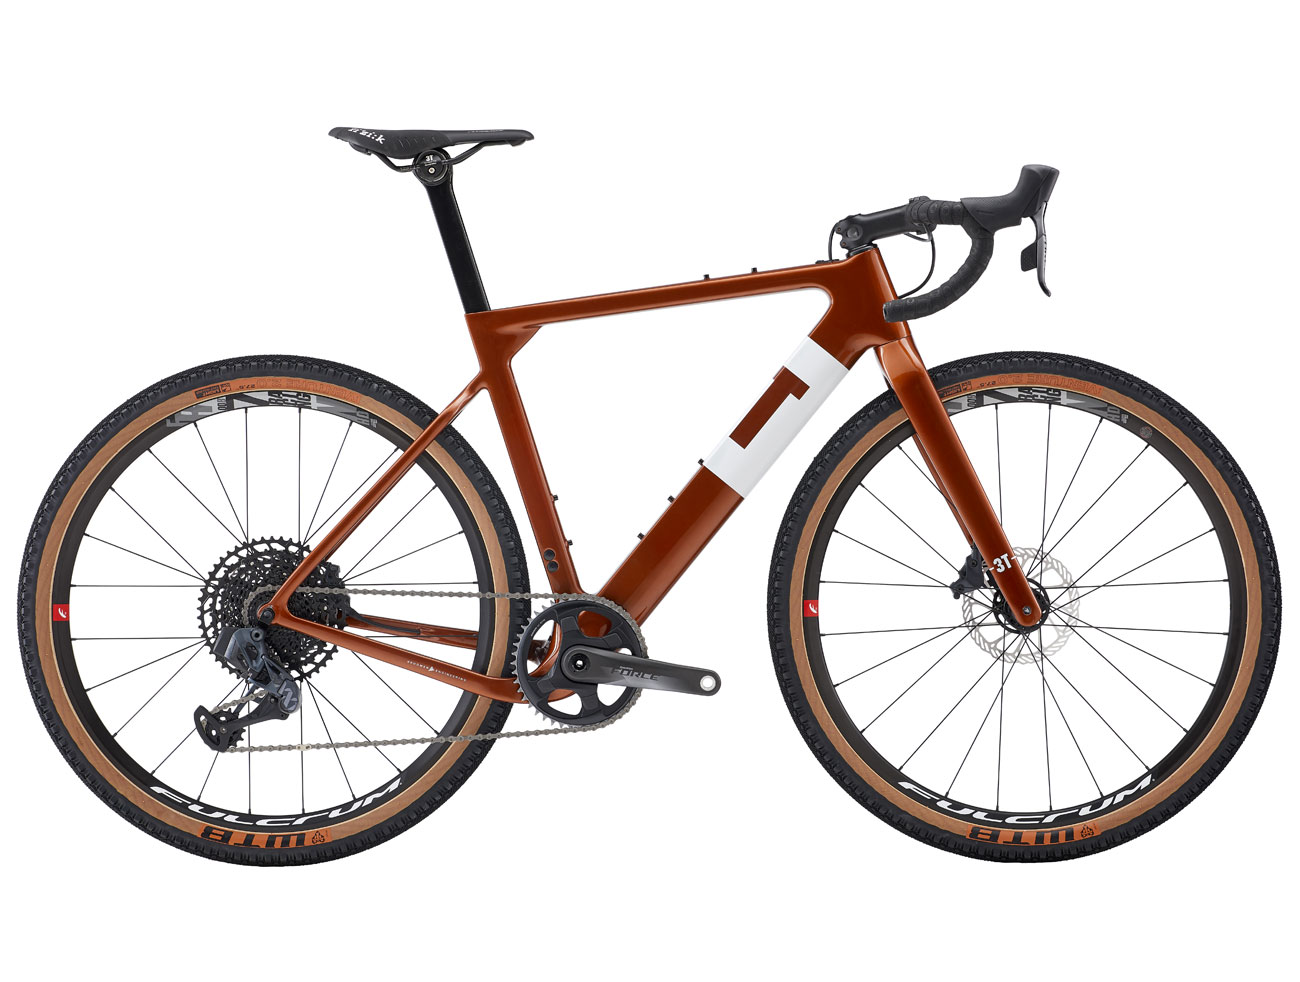 3T's Exploro Gets Friendlier Pricepoints with Rival, GRX and AXS Mullet Options 19